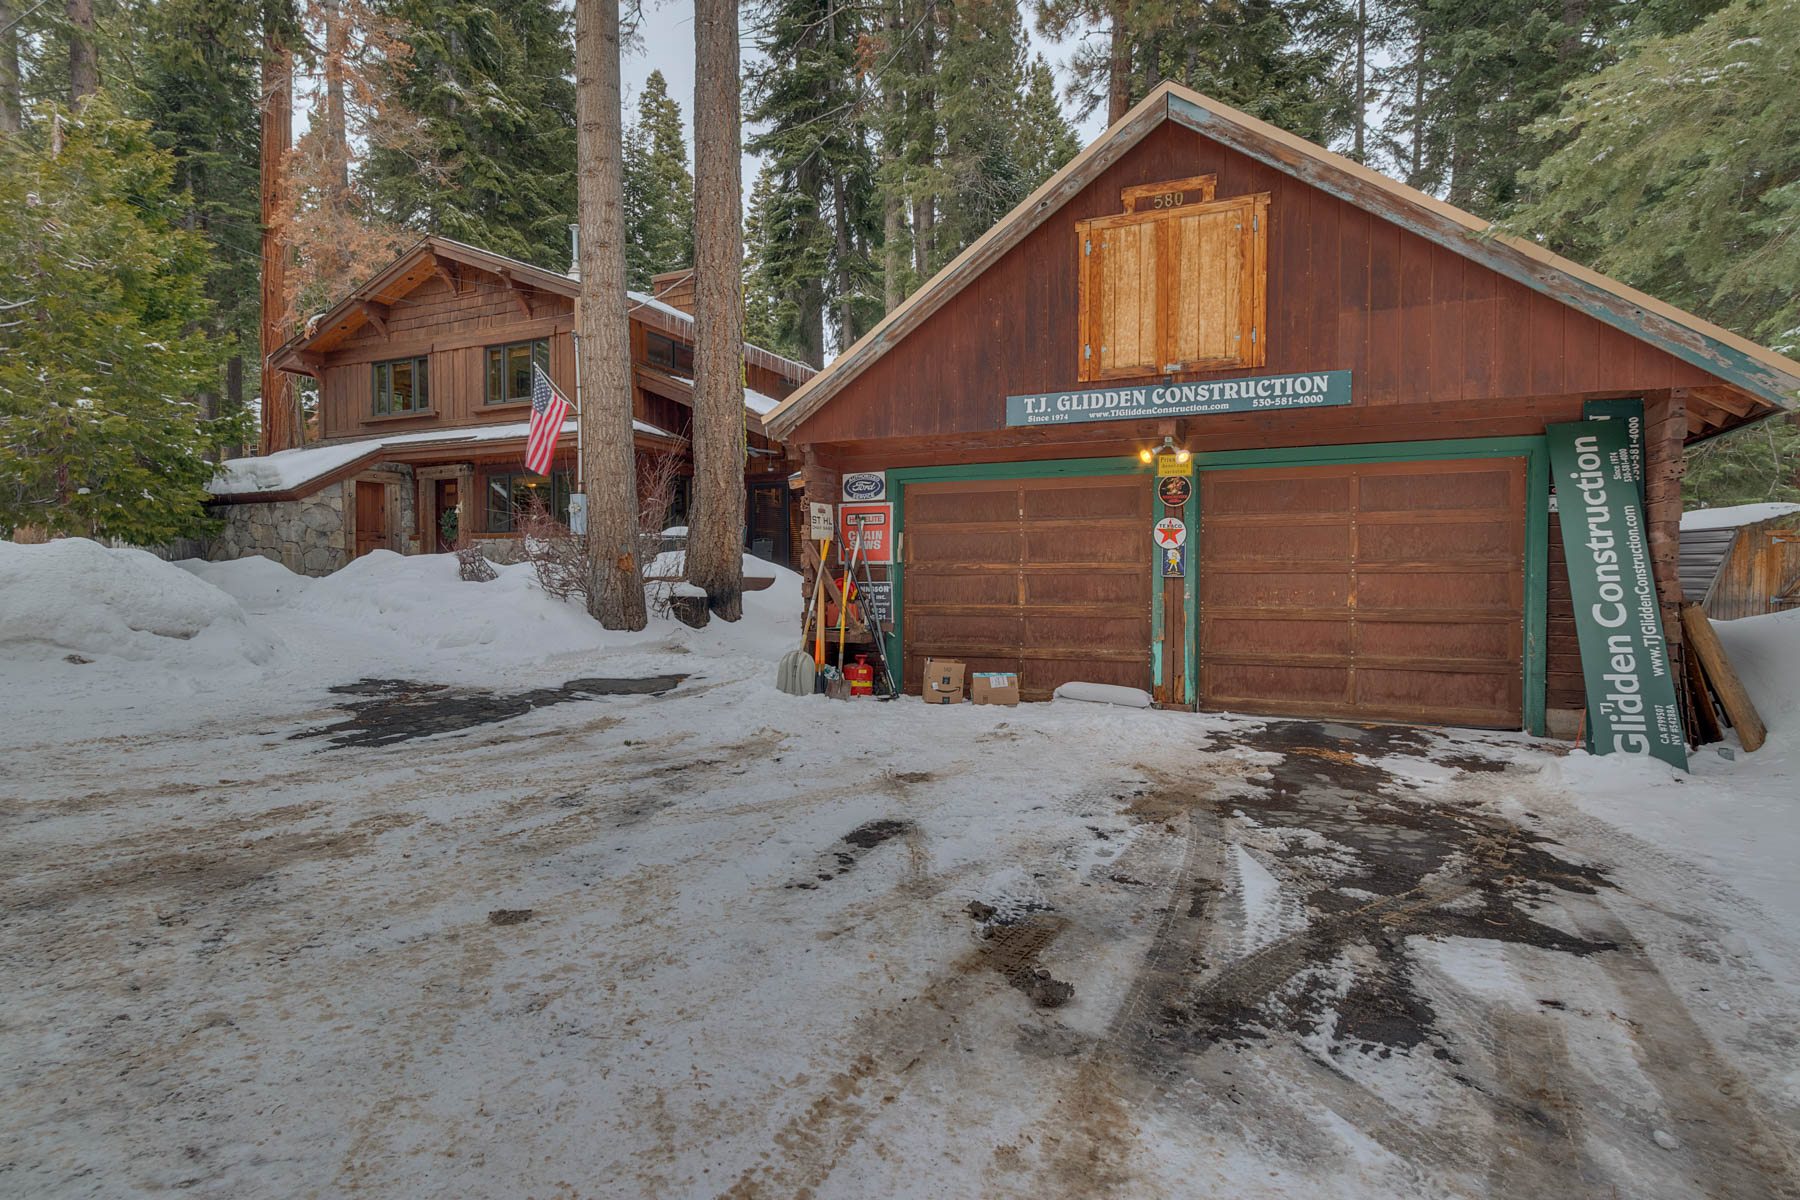 Additional photo for property listing at Tranquility in Timberland 580 Sugar Pine Road Tahoe City, California 96145 United States